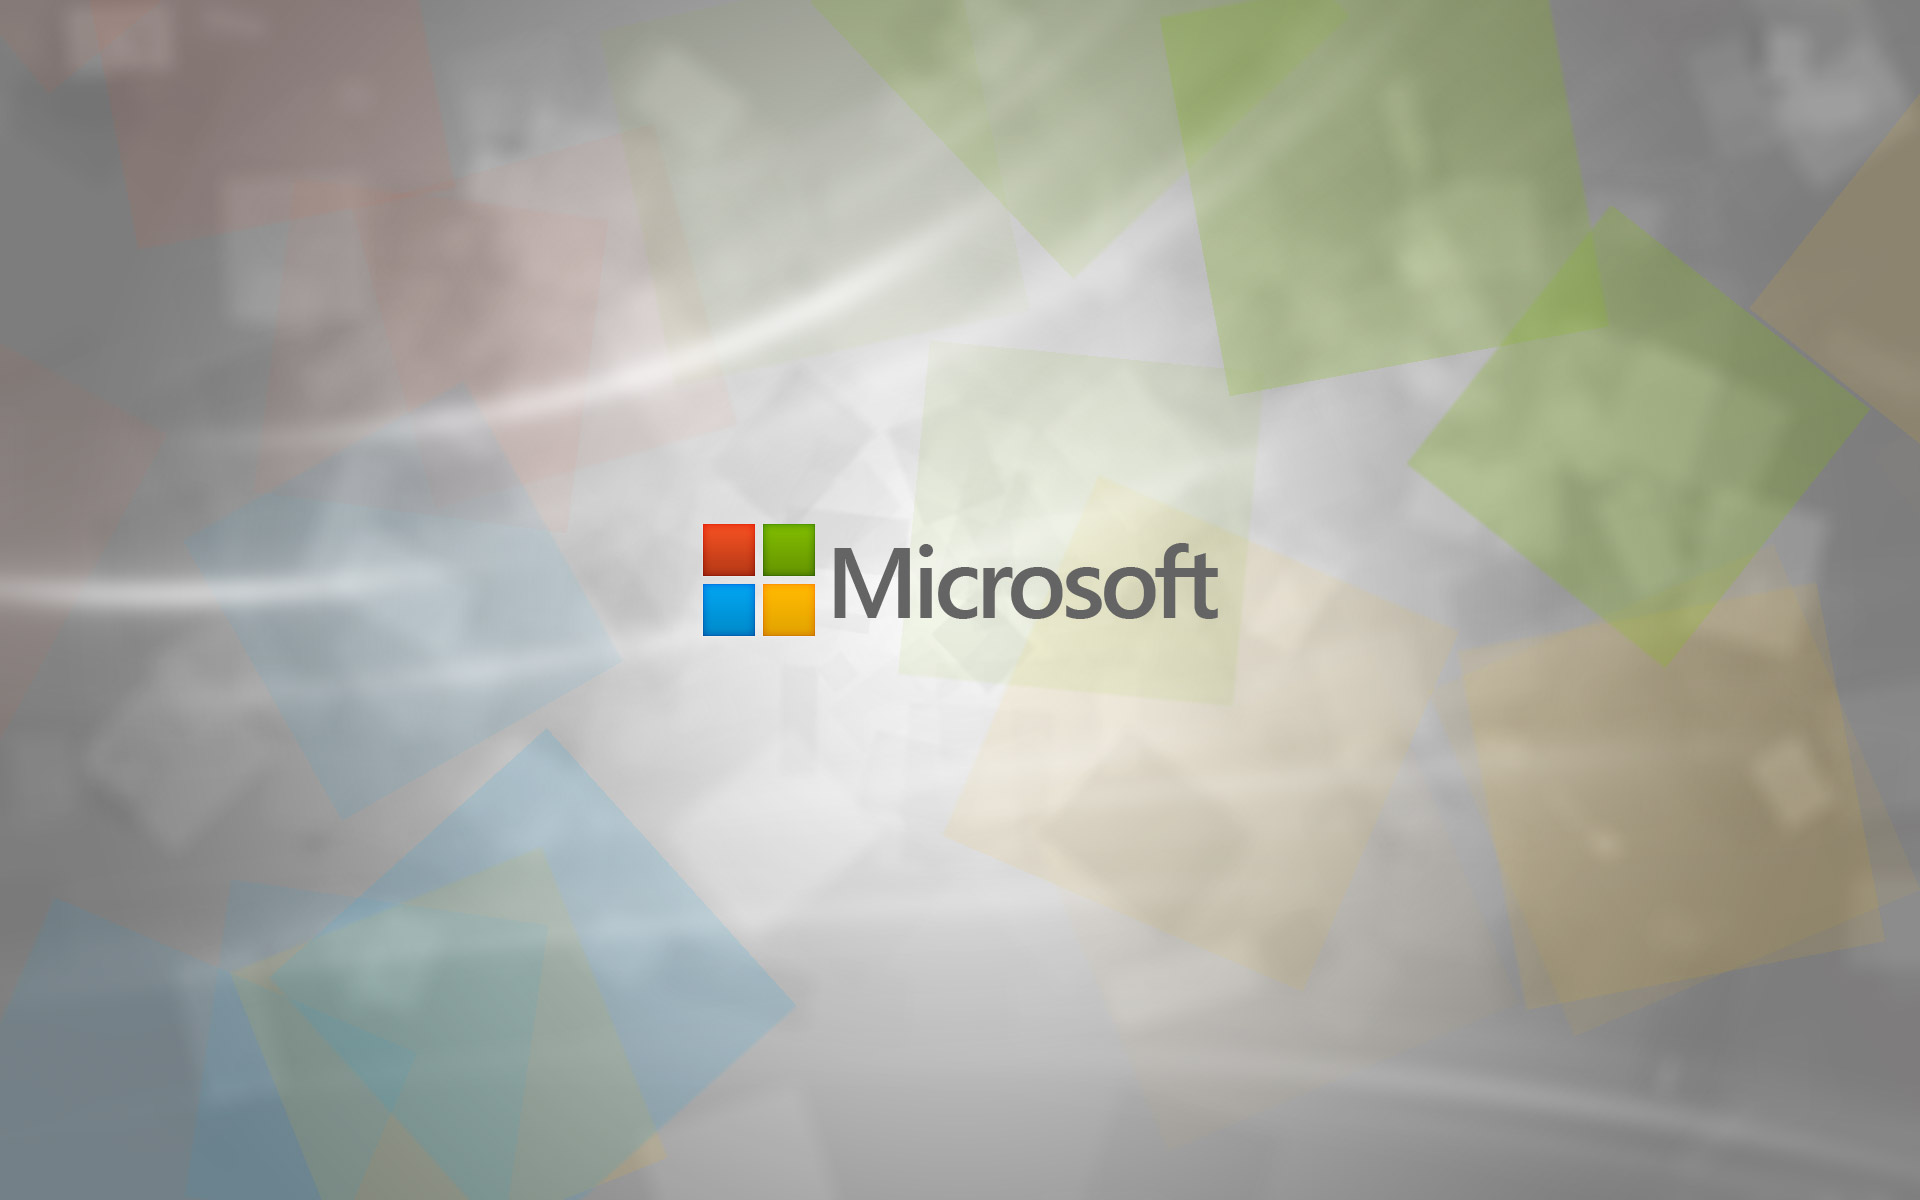 Microsoft Desktop Backgrounds HD 1920x1200